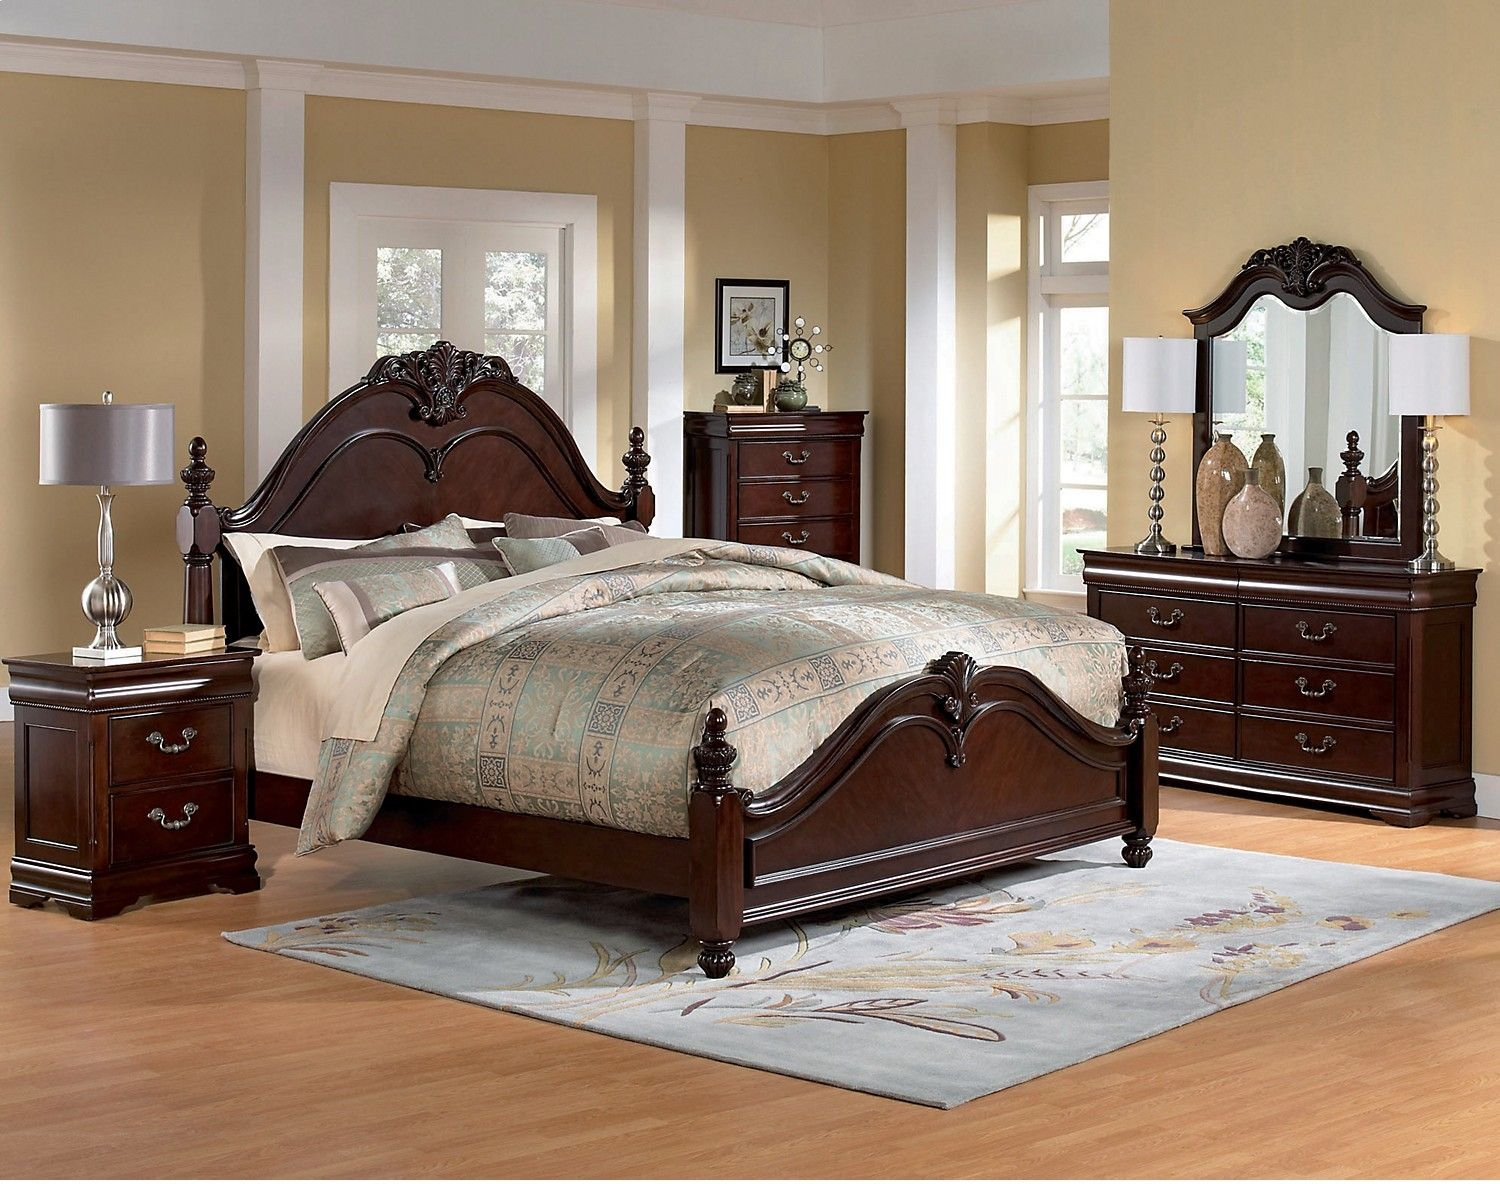 brick bedroom furniture. Brick Bedroom Furniture. Furniture - Westchester 6-piece Queen Set Pinterest R